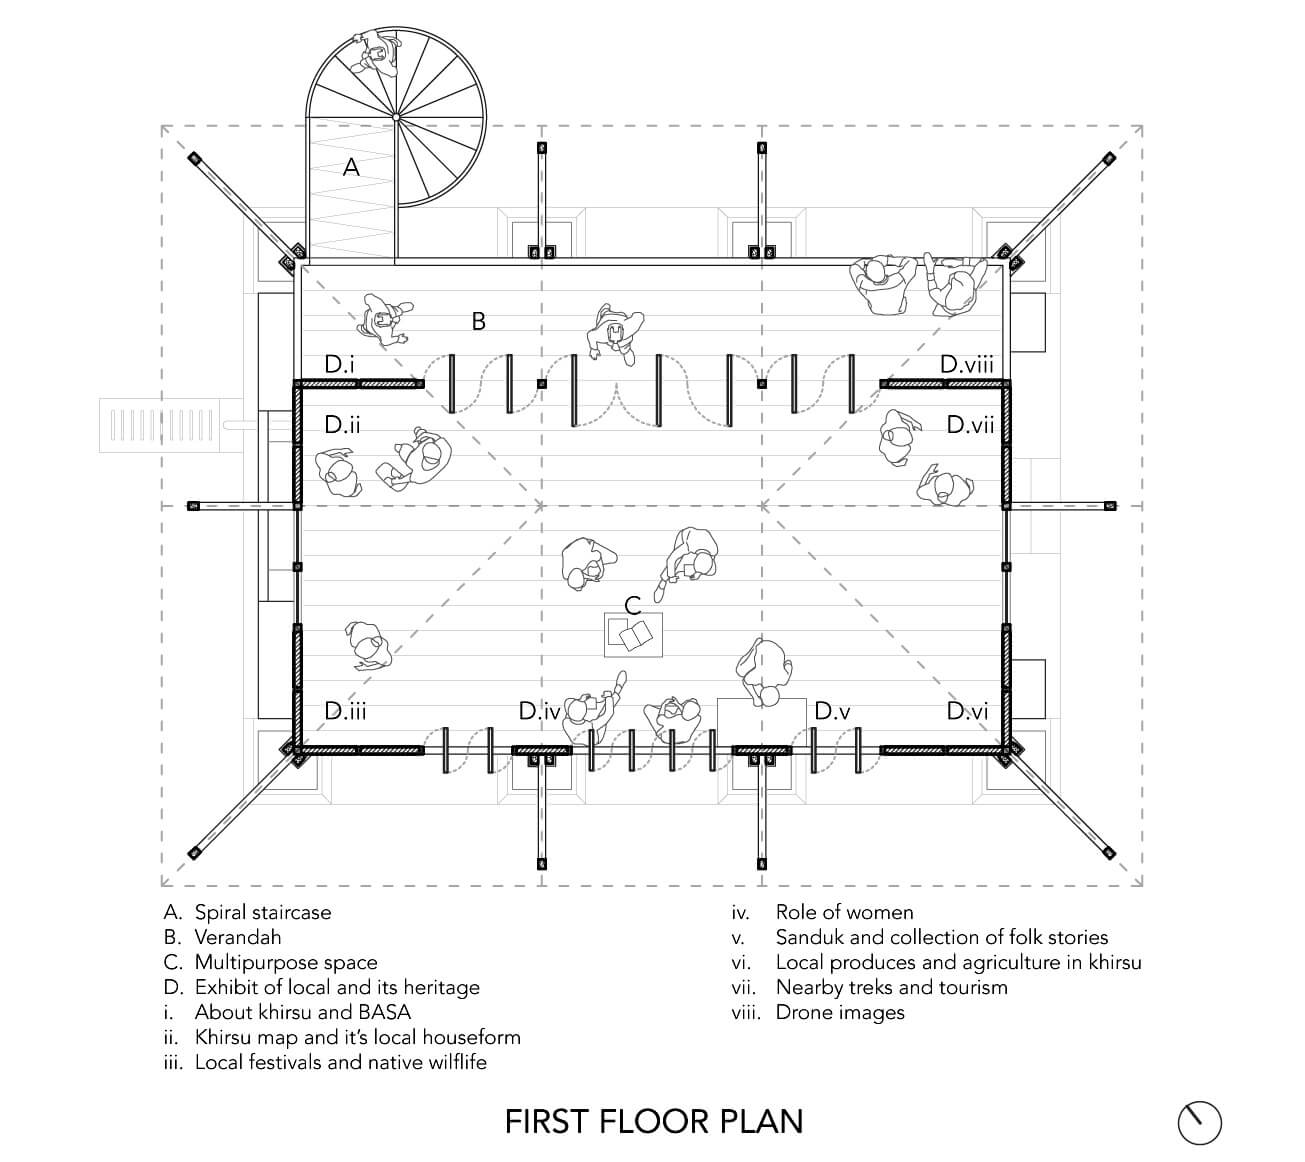 First floor plan of the BASA Tourism Center in Khirsu, Uttarakhand, India | BASA Tourism Center | Compartment S4 | STIRworld